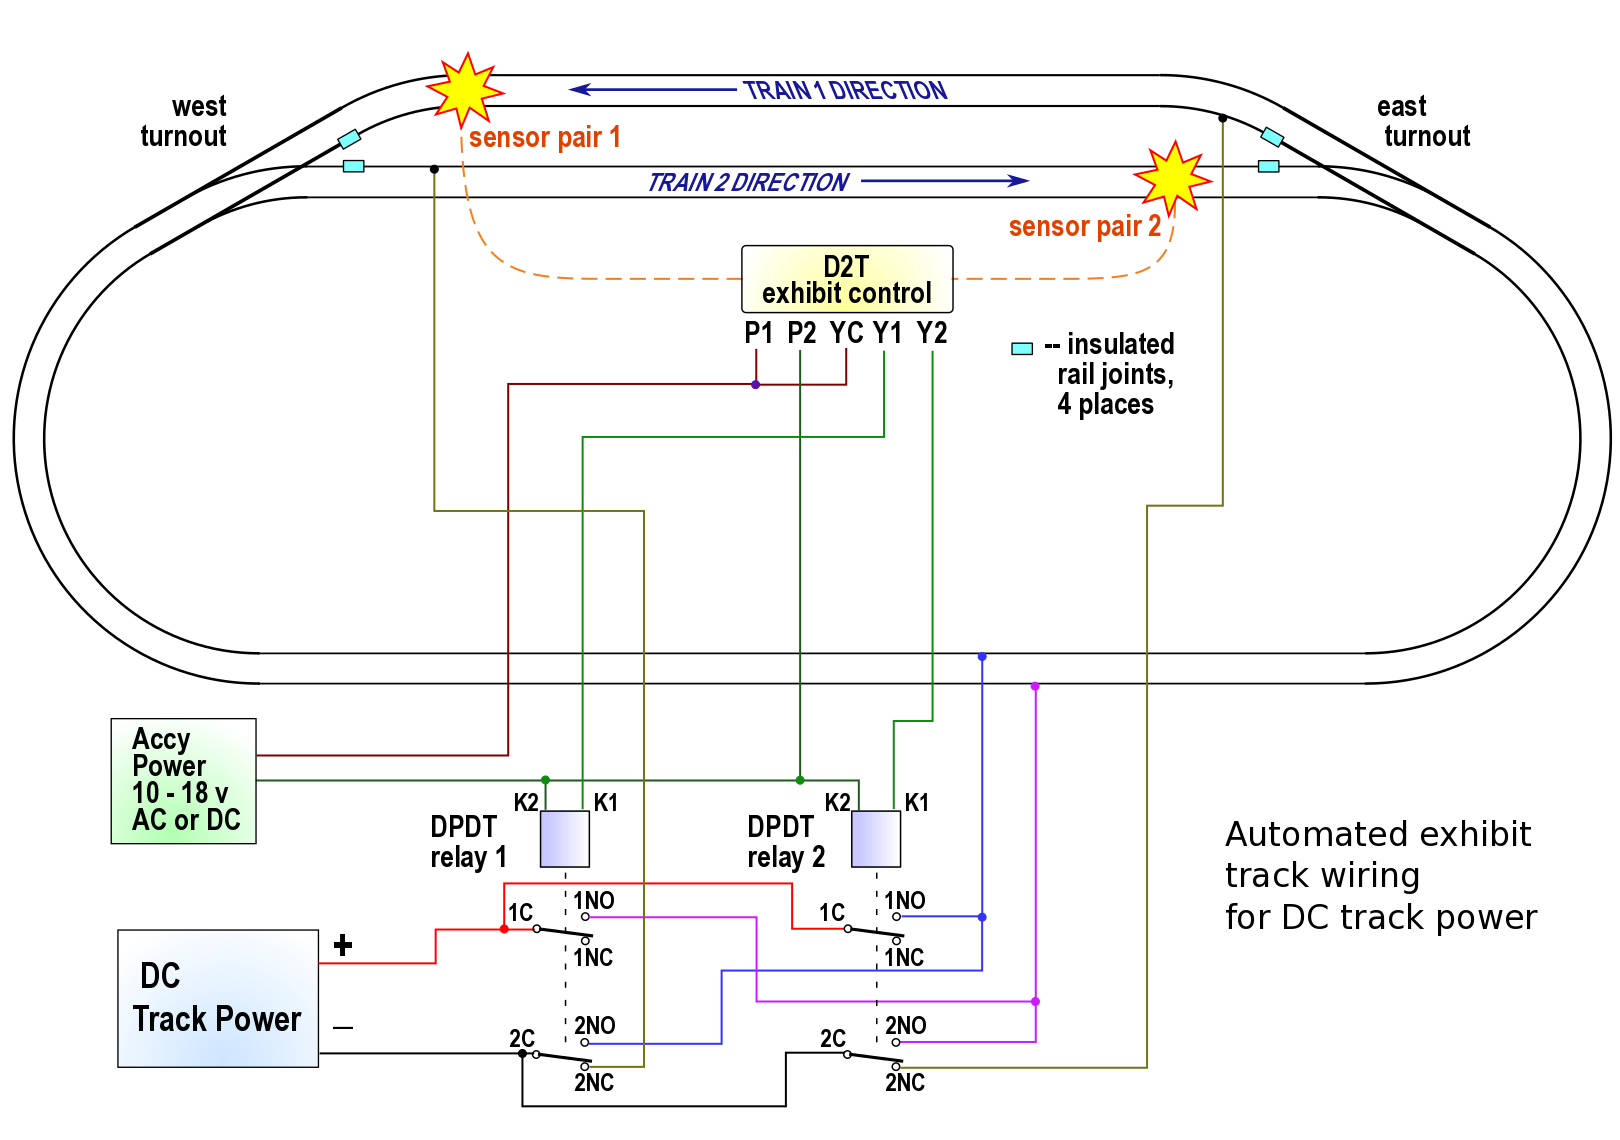 medium resolution of loop wiring diagram for dc model railroad model trains train model model railway dc wiring diagrams